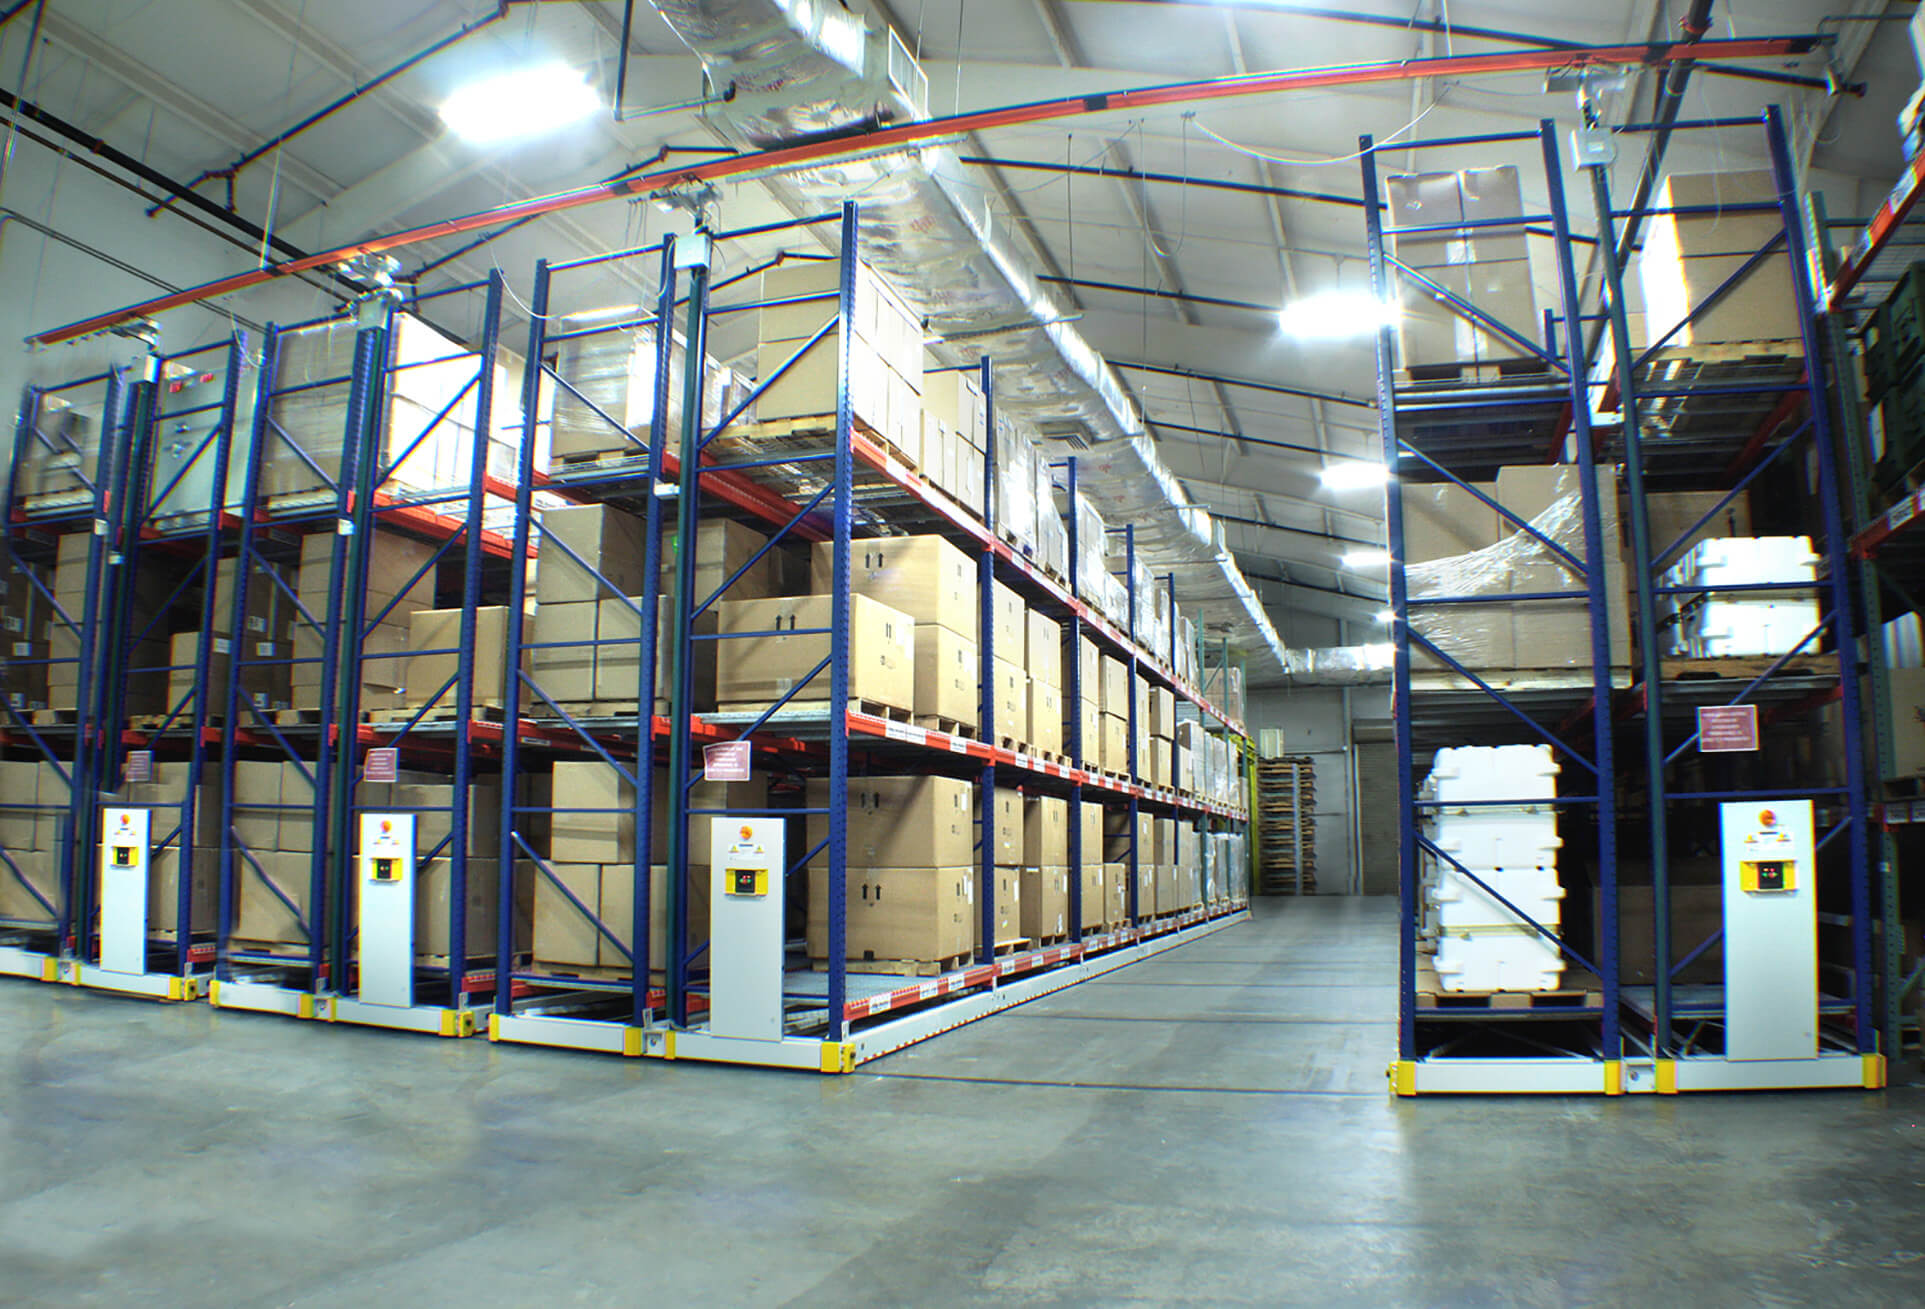 Warehouse materials stored on powered compact racking system